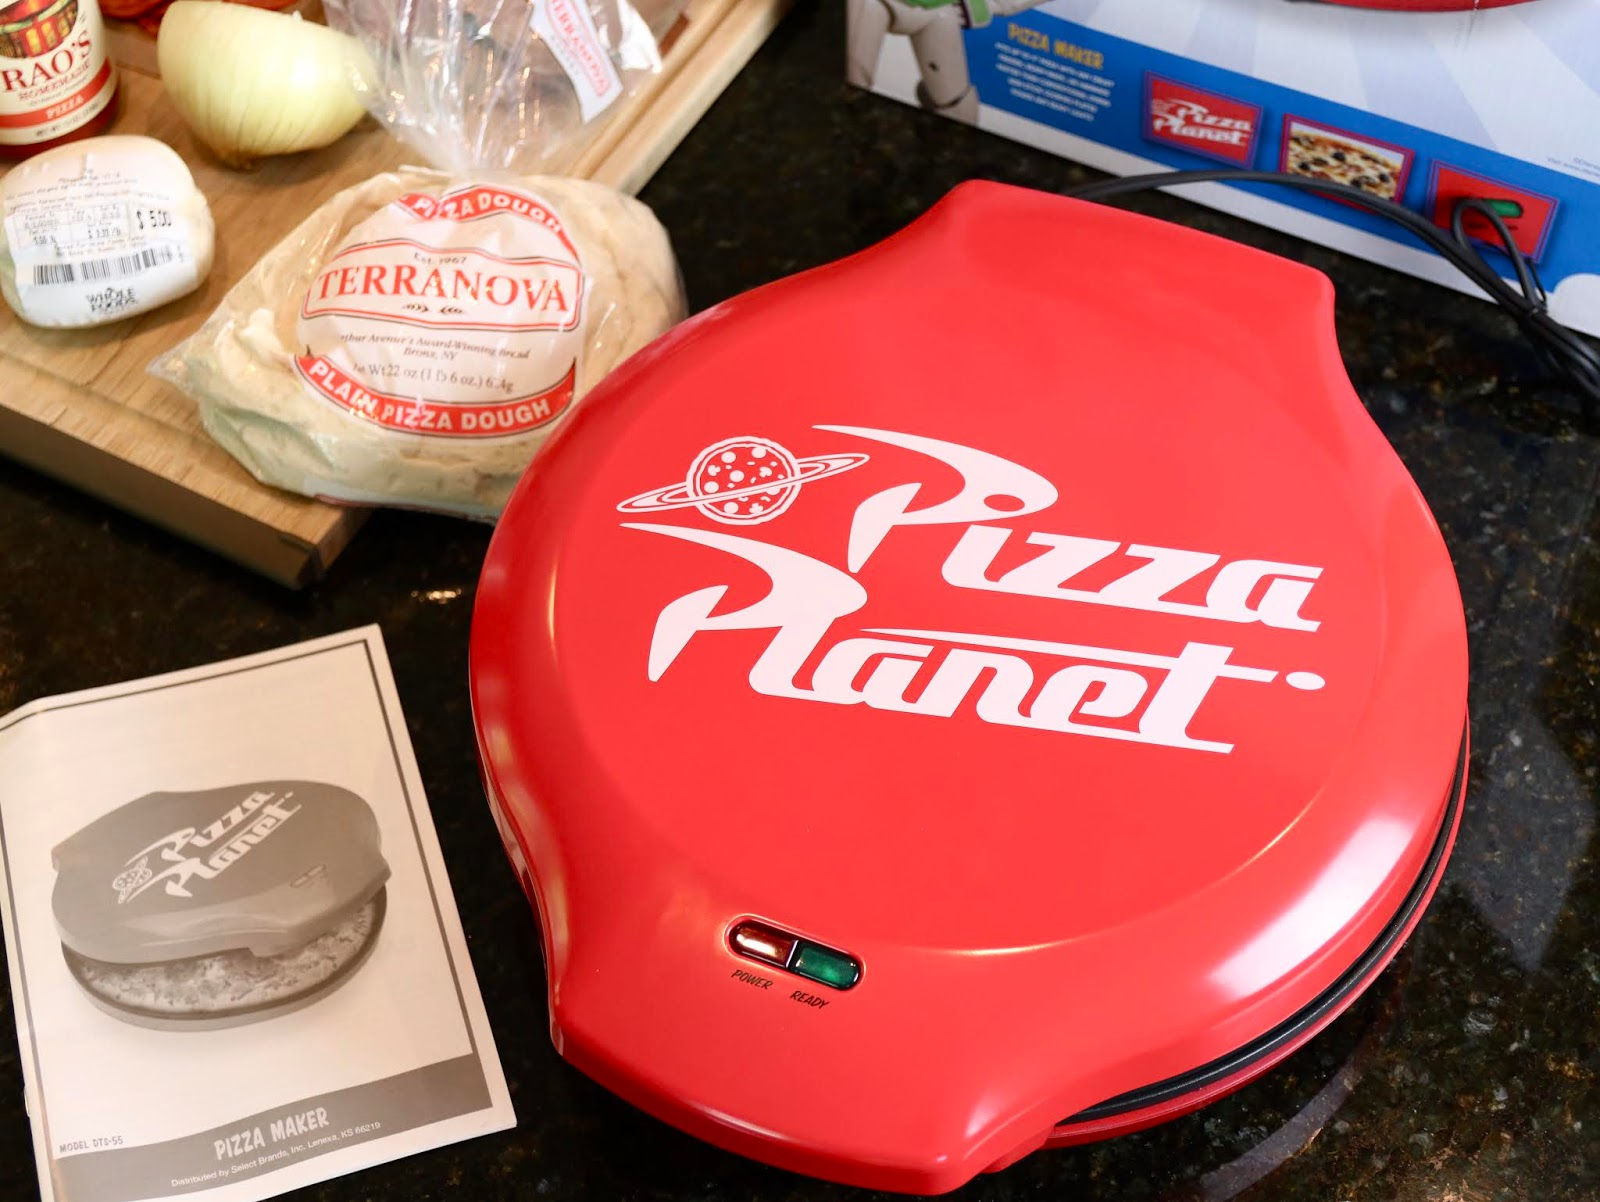 Toy Story Pizza Planet Pizza Maker Review National Pizza Party Day